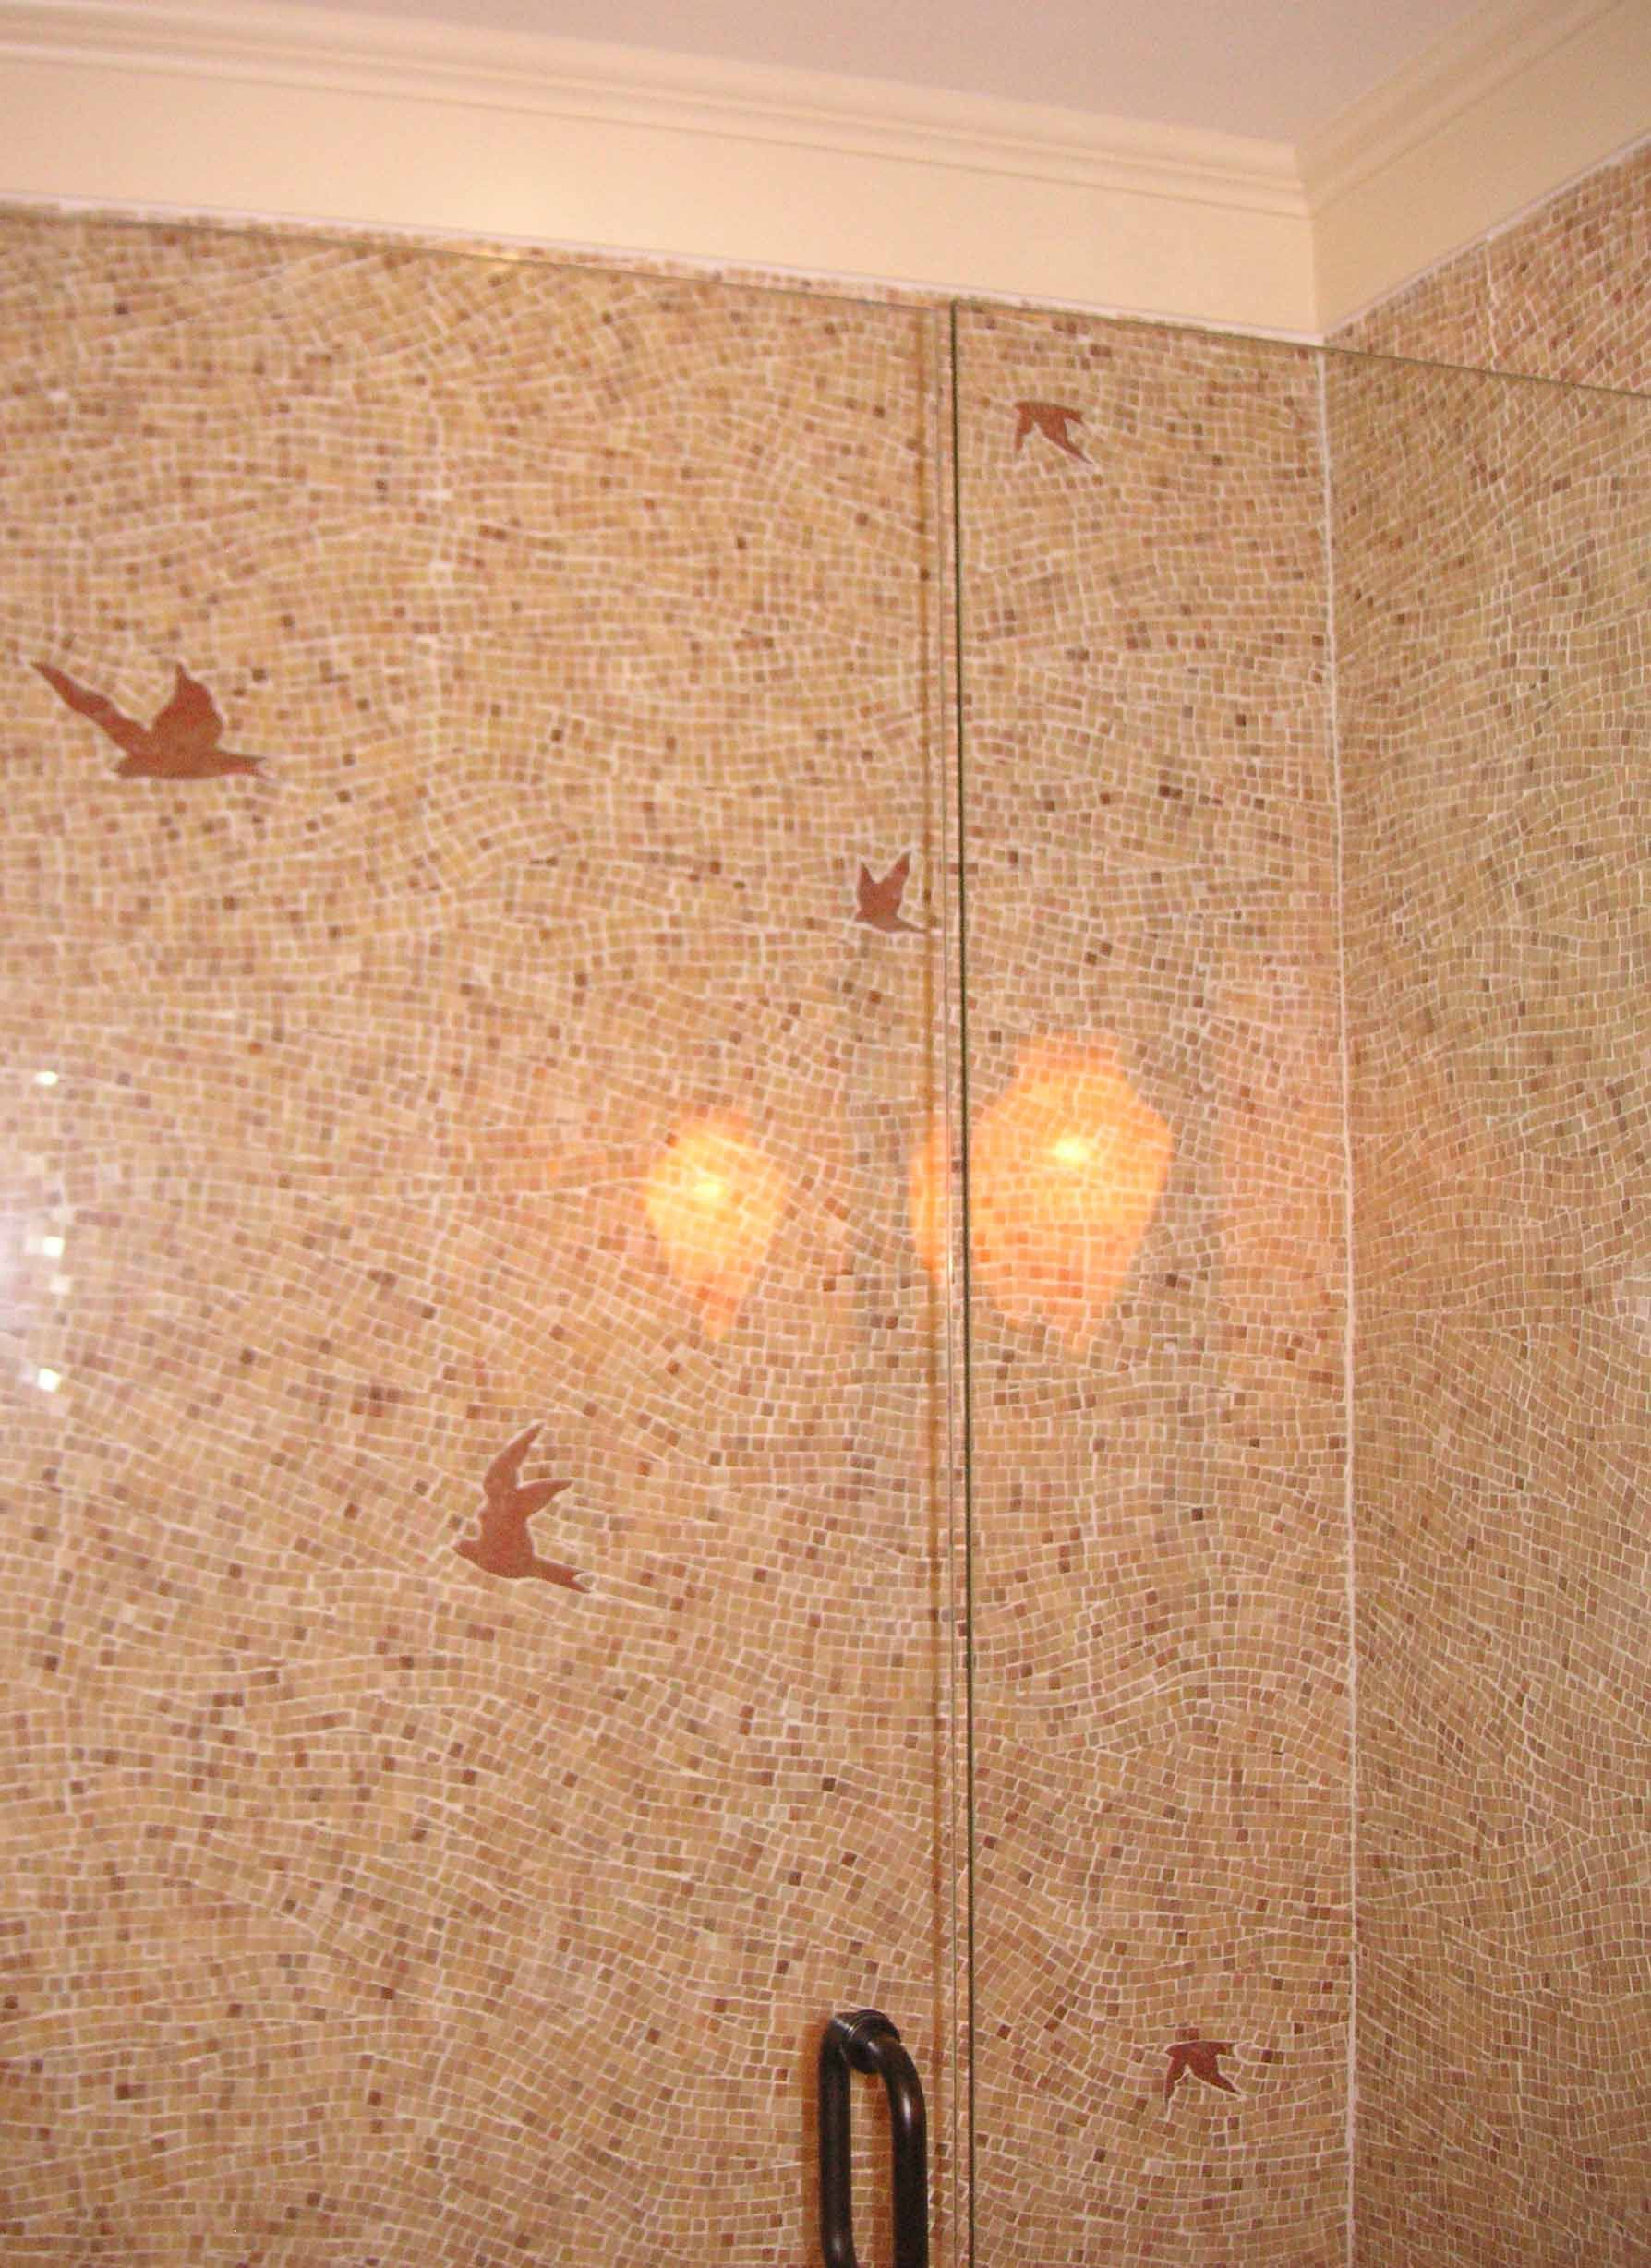 Birds are interesting. Like the tile pattern. Color? Meh ...